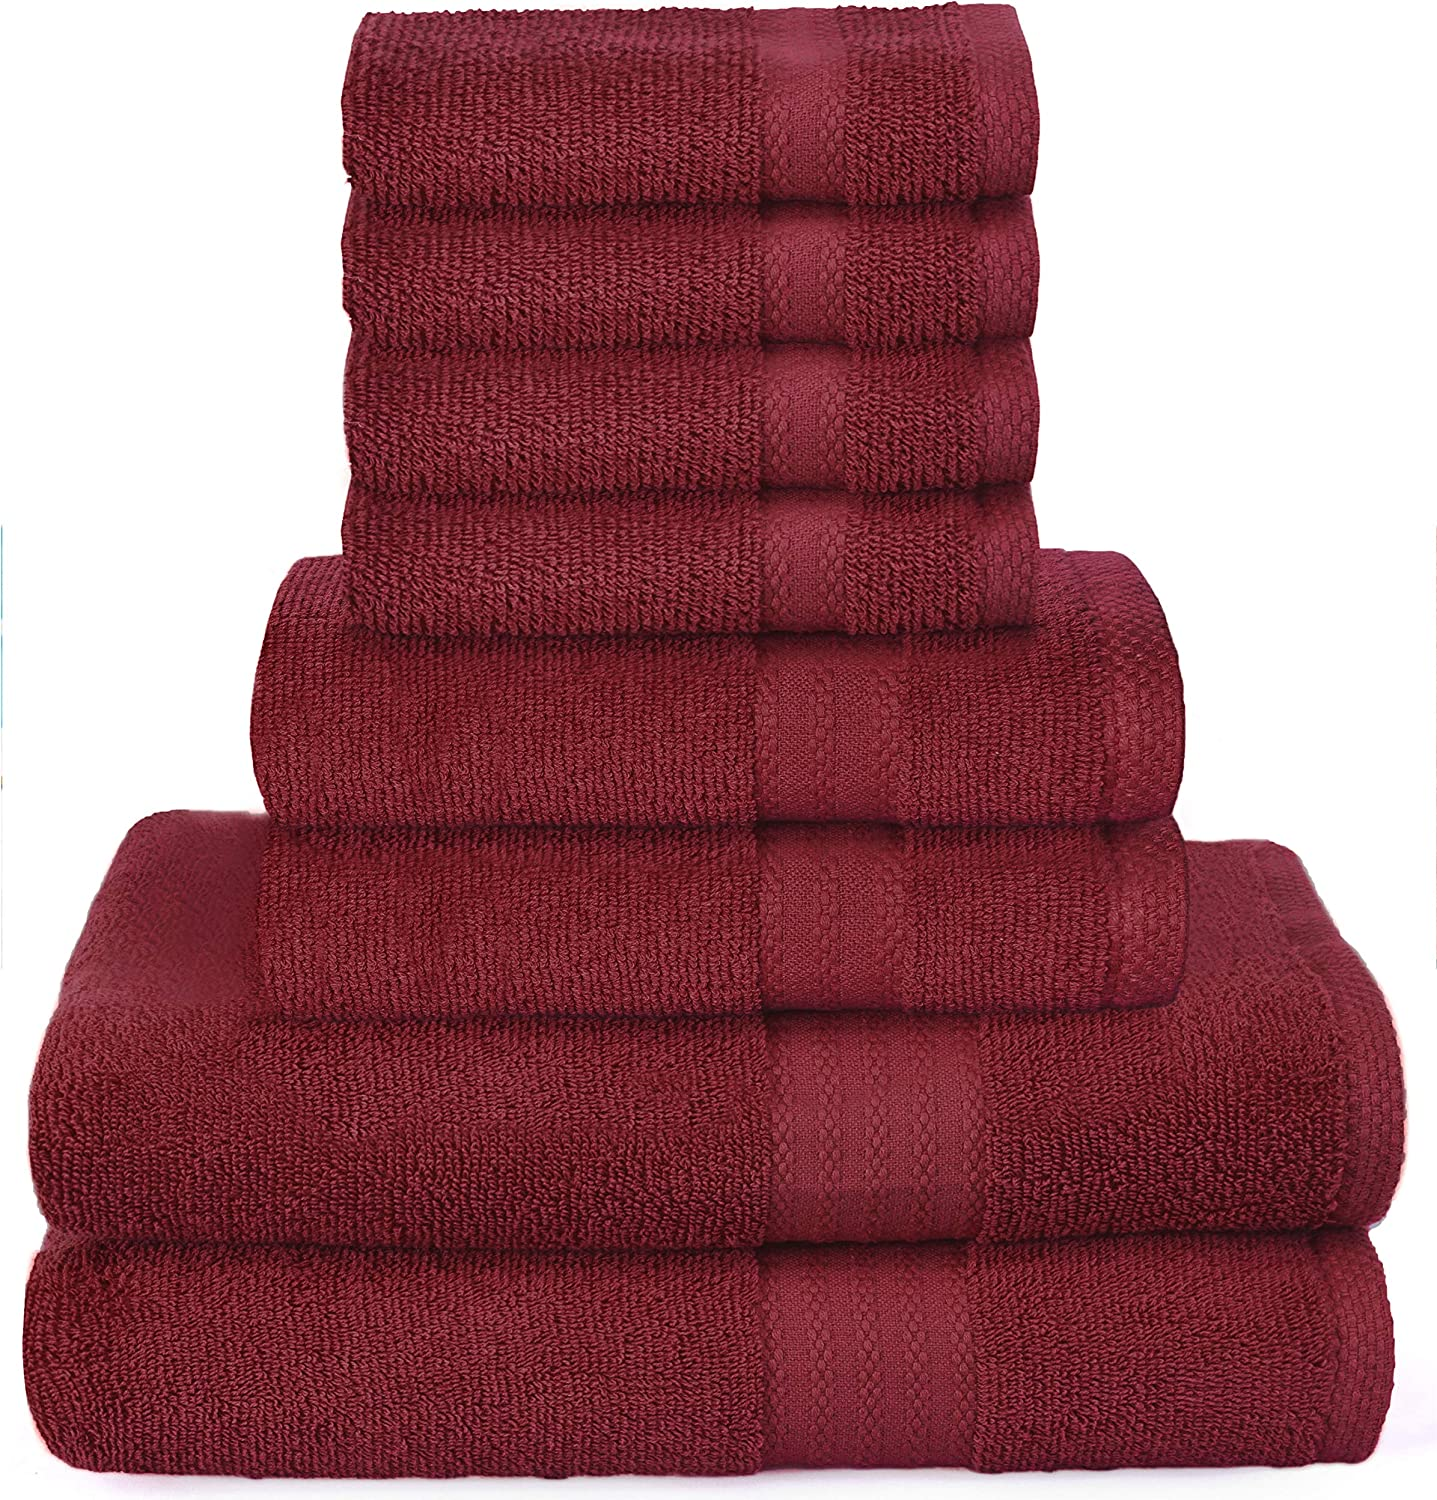 Glamburg Ultra Soft 8-Piece Towel Set - 100% Pure Ringspun Cotton, Contains 2 Oversized Bath Towels 27x54, 2 Hand Towels 16x28, 4 Wash Cloths 13x13 - Ideal for Everyday use, Hotel & Spa - Burgundy